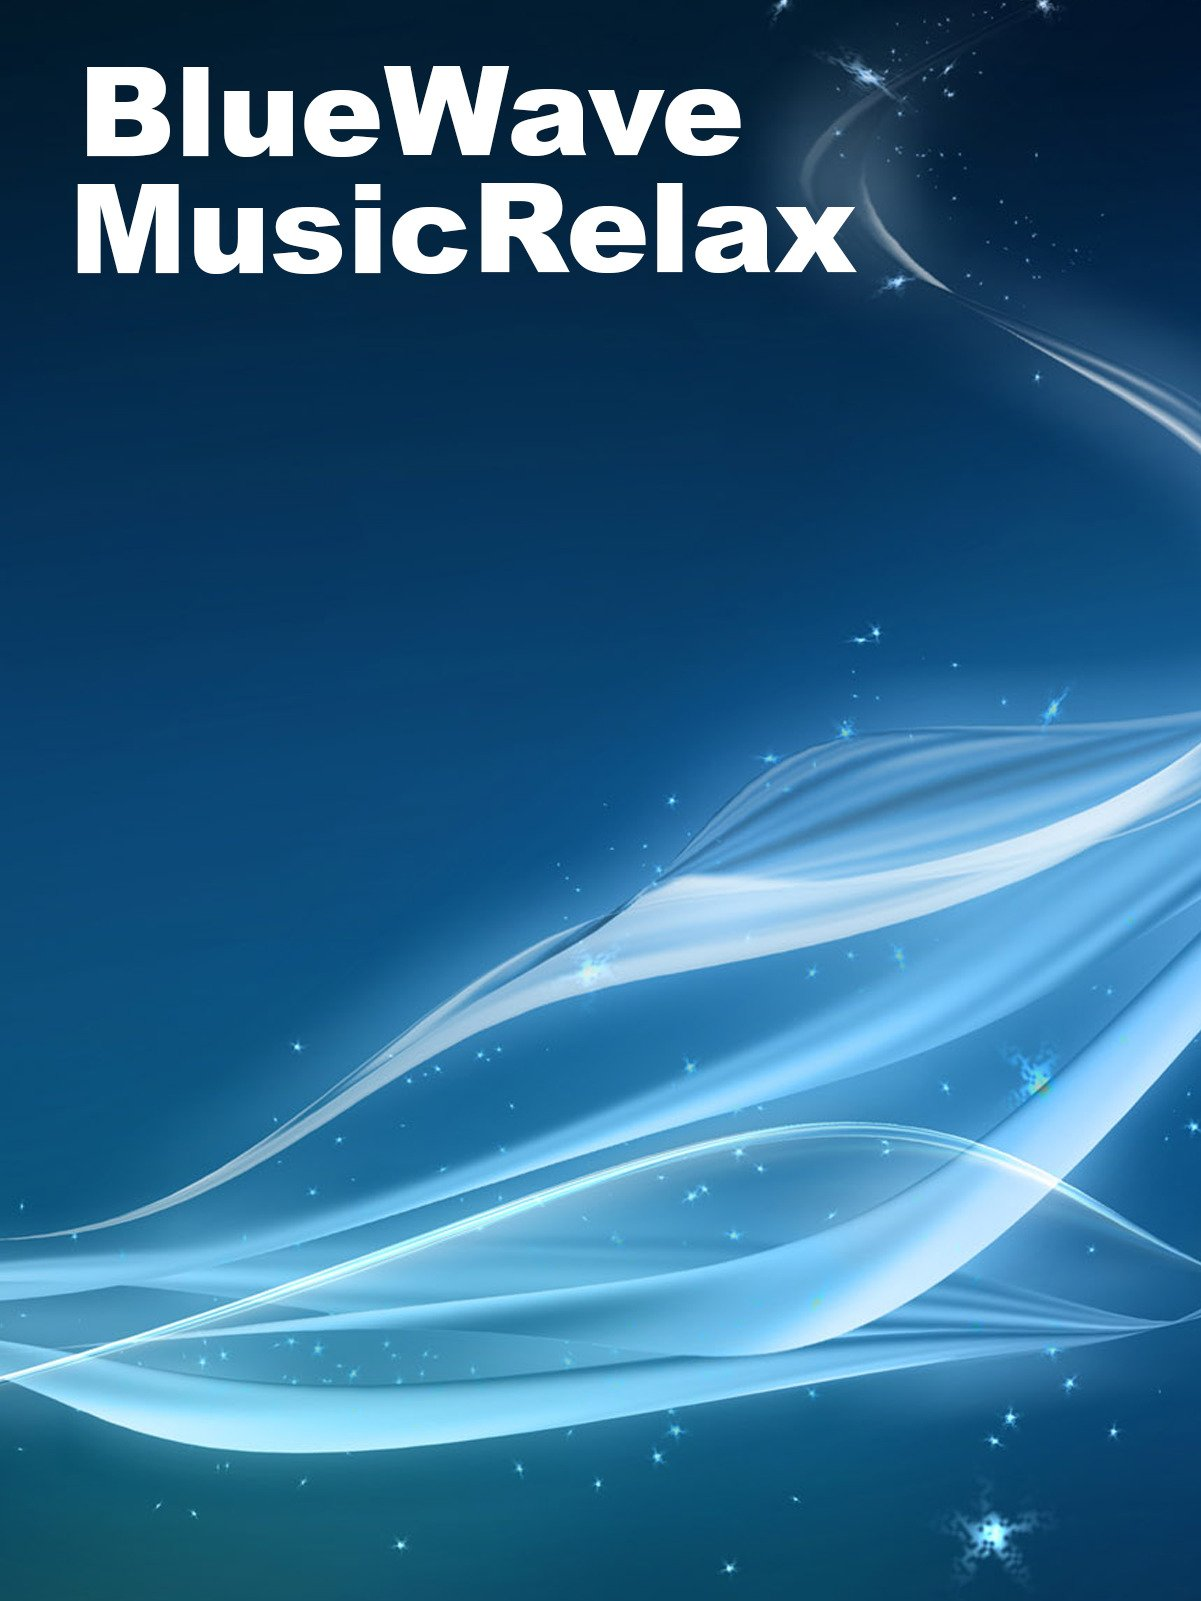 Blue Wave Music Relax